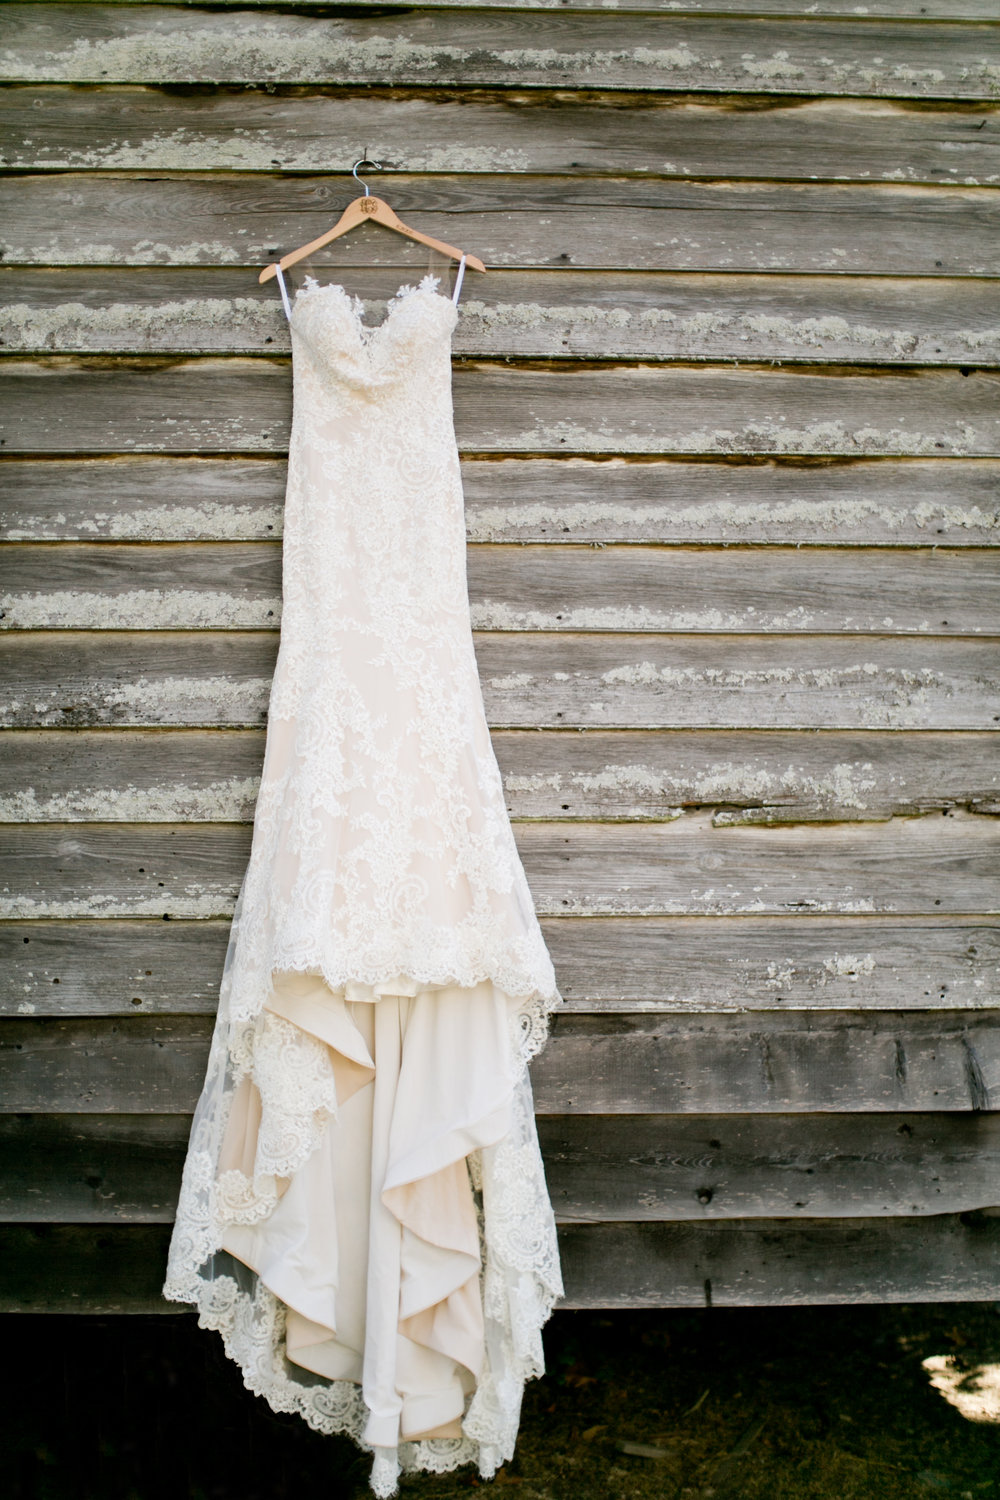 asheville_wedding_photographer501.jpg